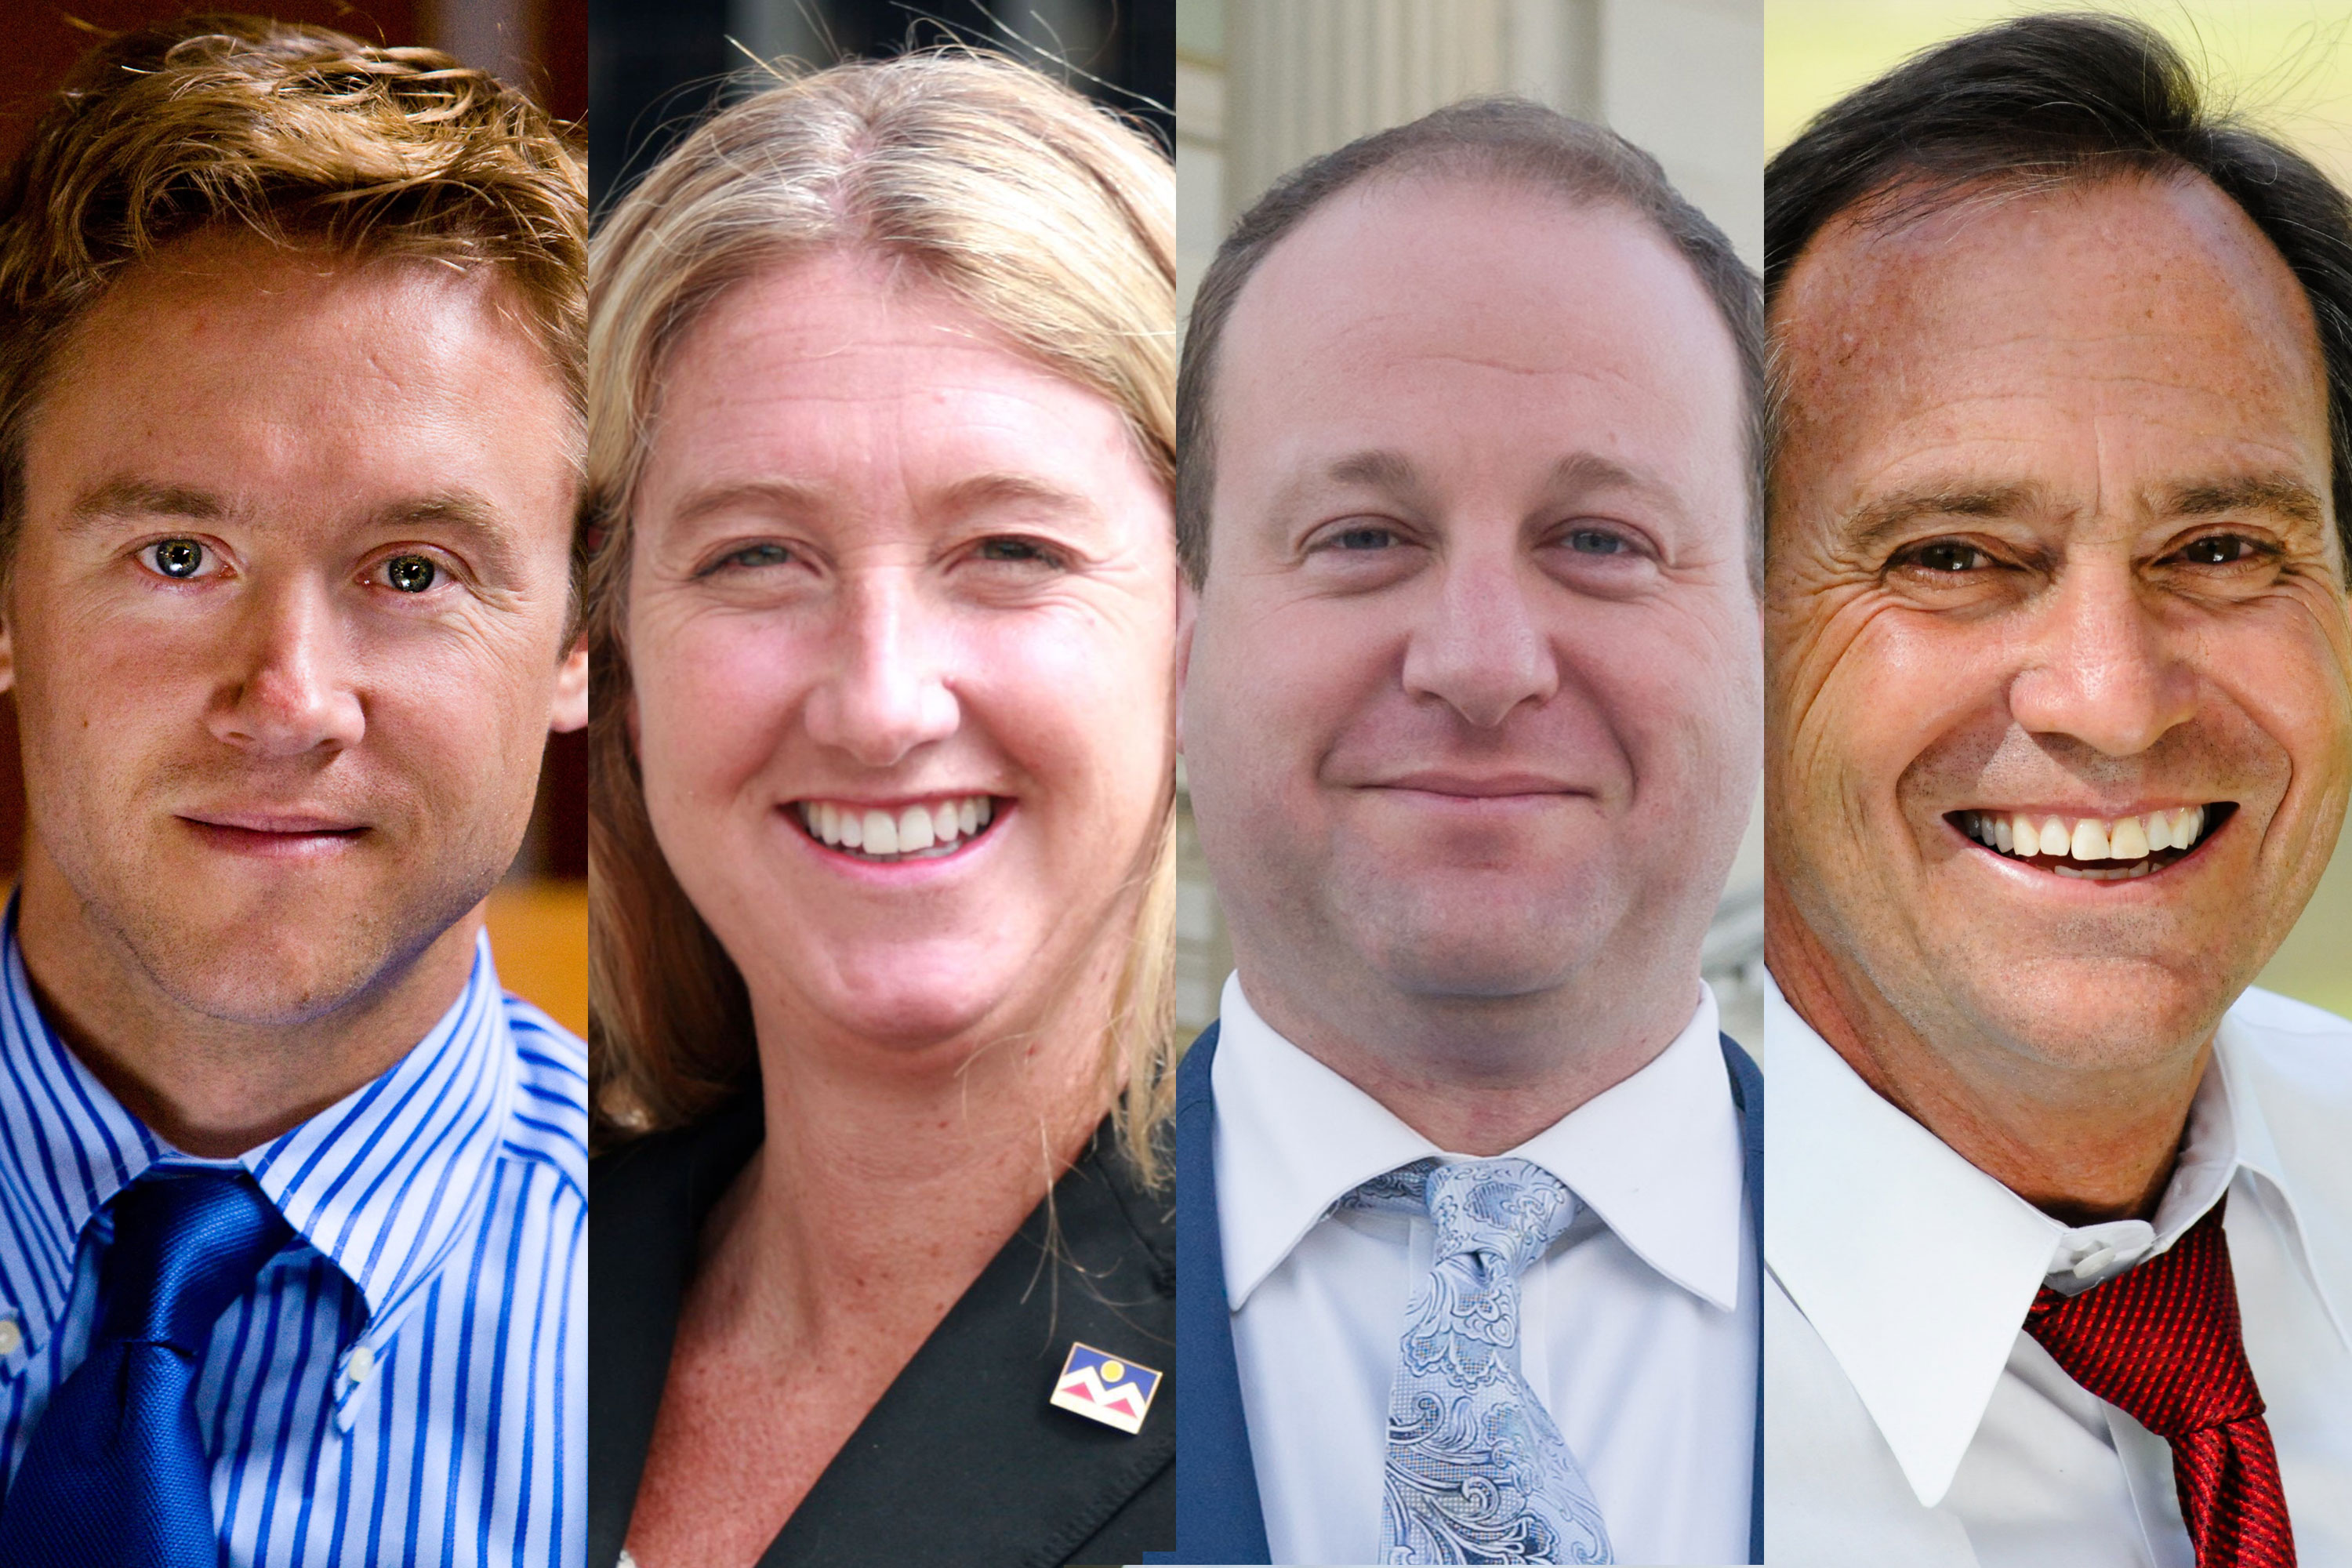 Photo: 2018 Dem Gov Primary | Johnston, Kennedy, Polis, Perlmutter Collage